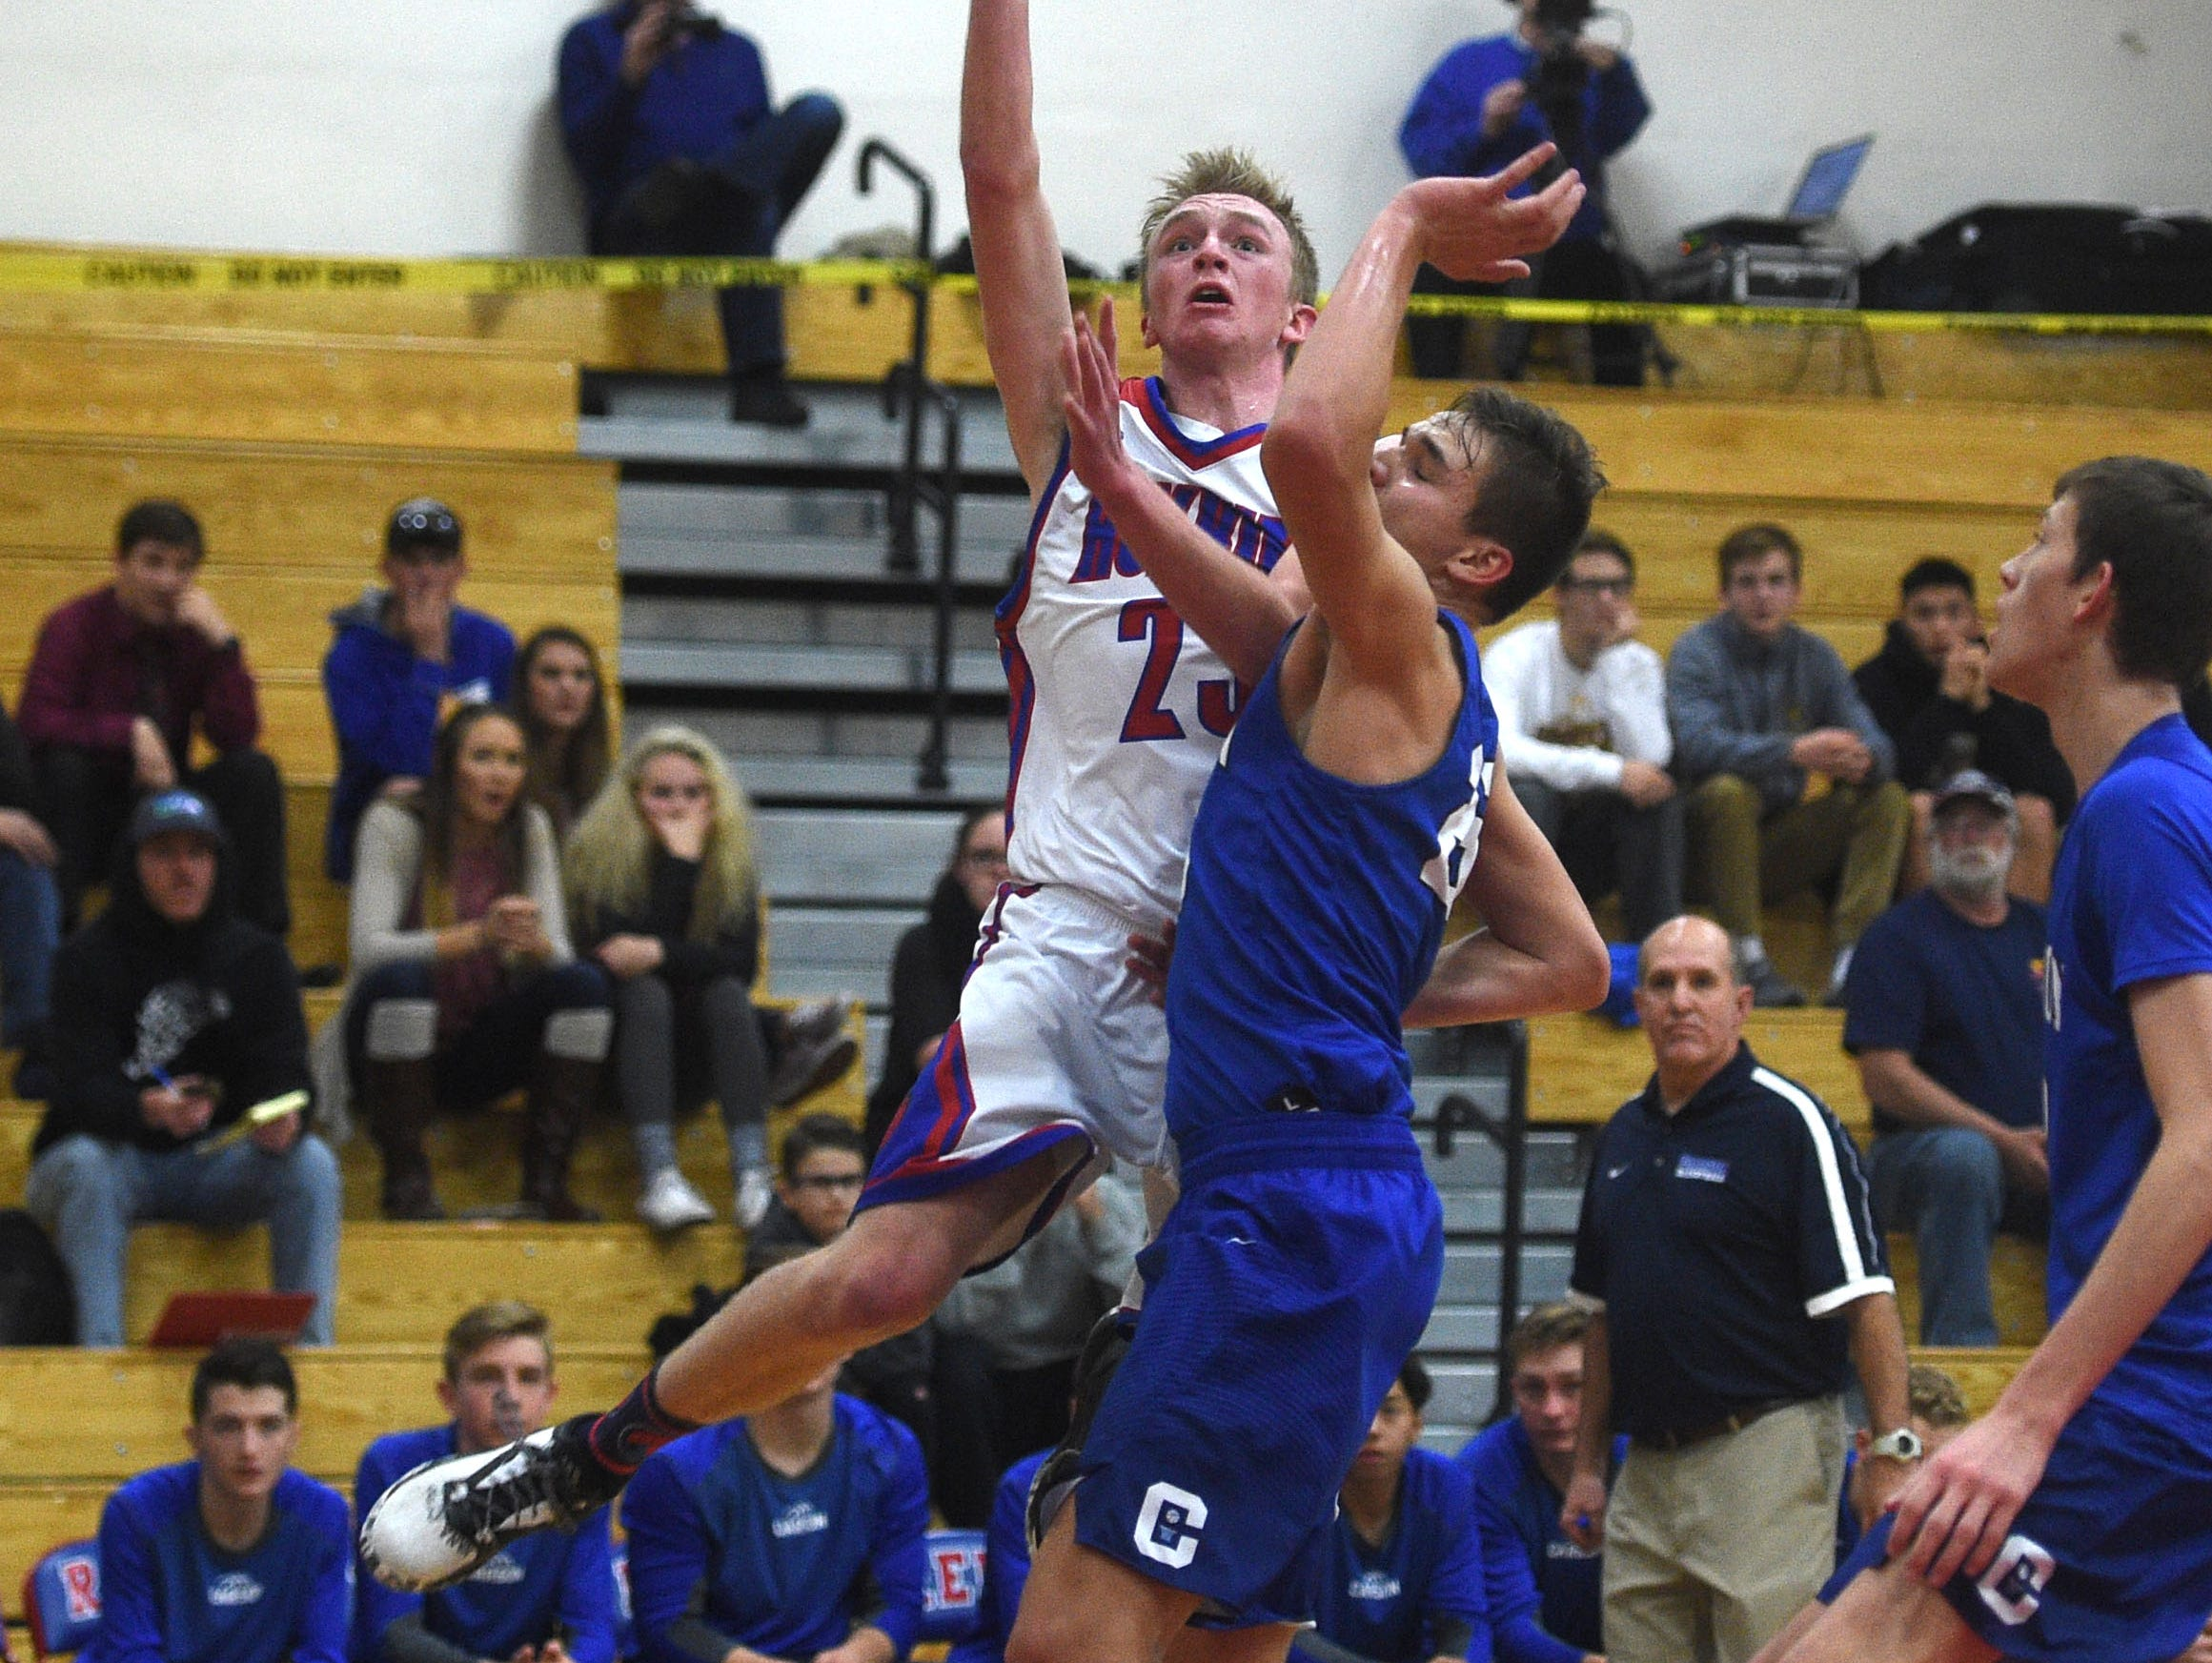 Reno's Drew Rippingham (23) shoots while taking on Carson during their basketball game in Reno on Dec. 23.